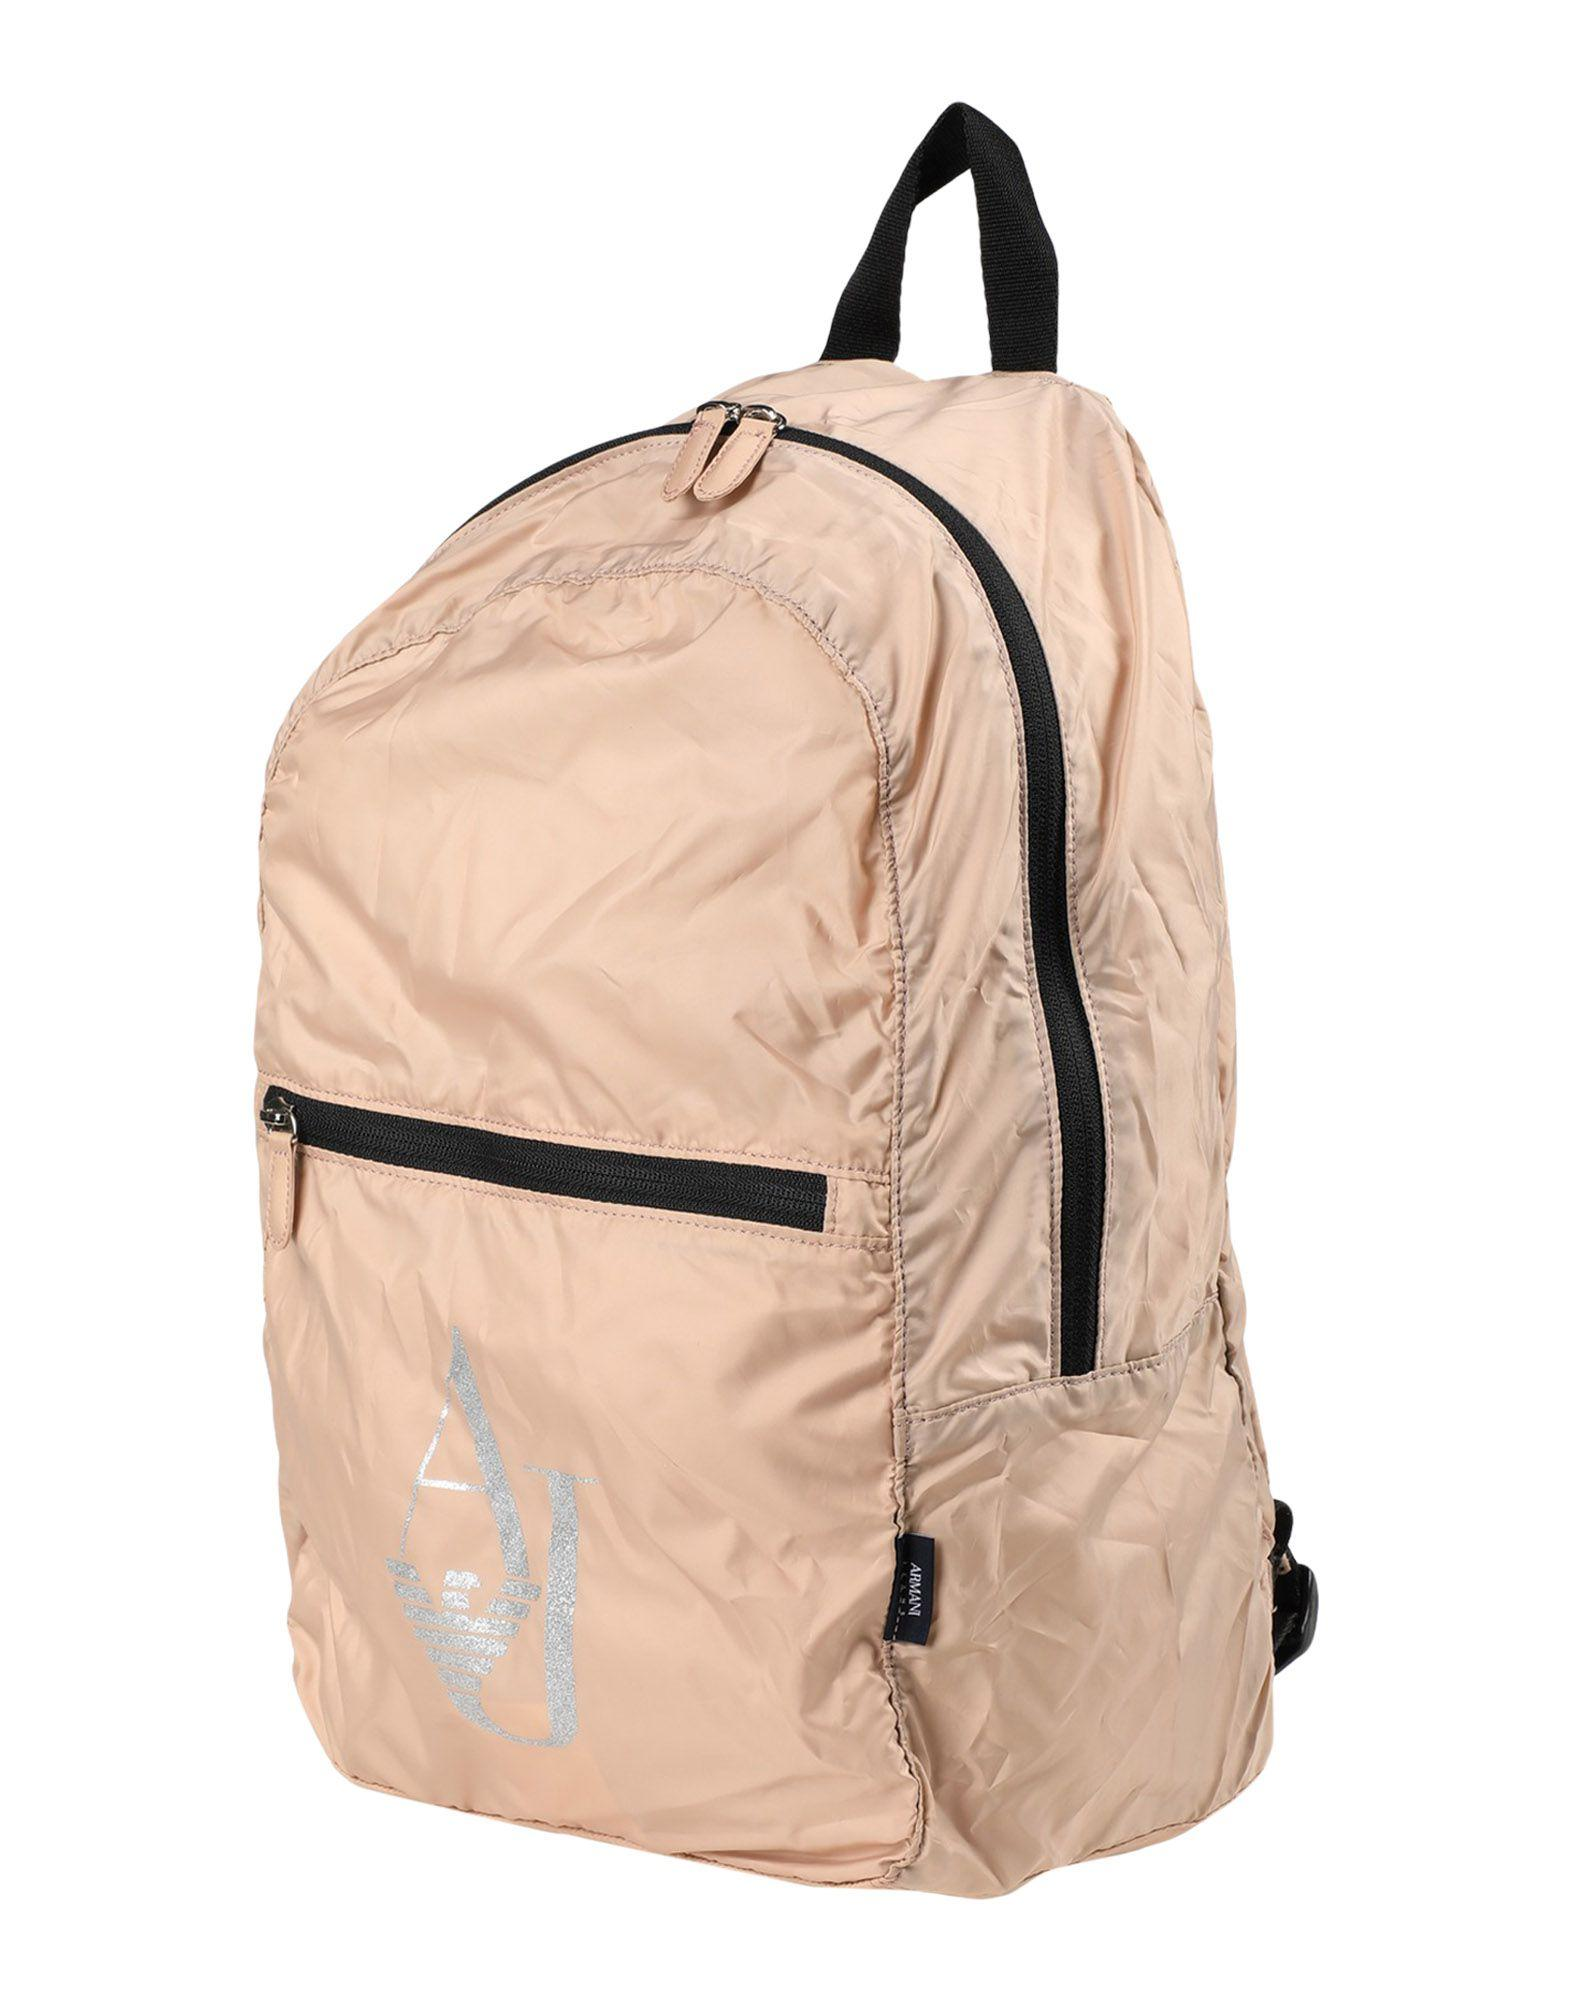 Armani Jeans Backpack & Fanny Pack In Beige